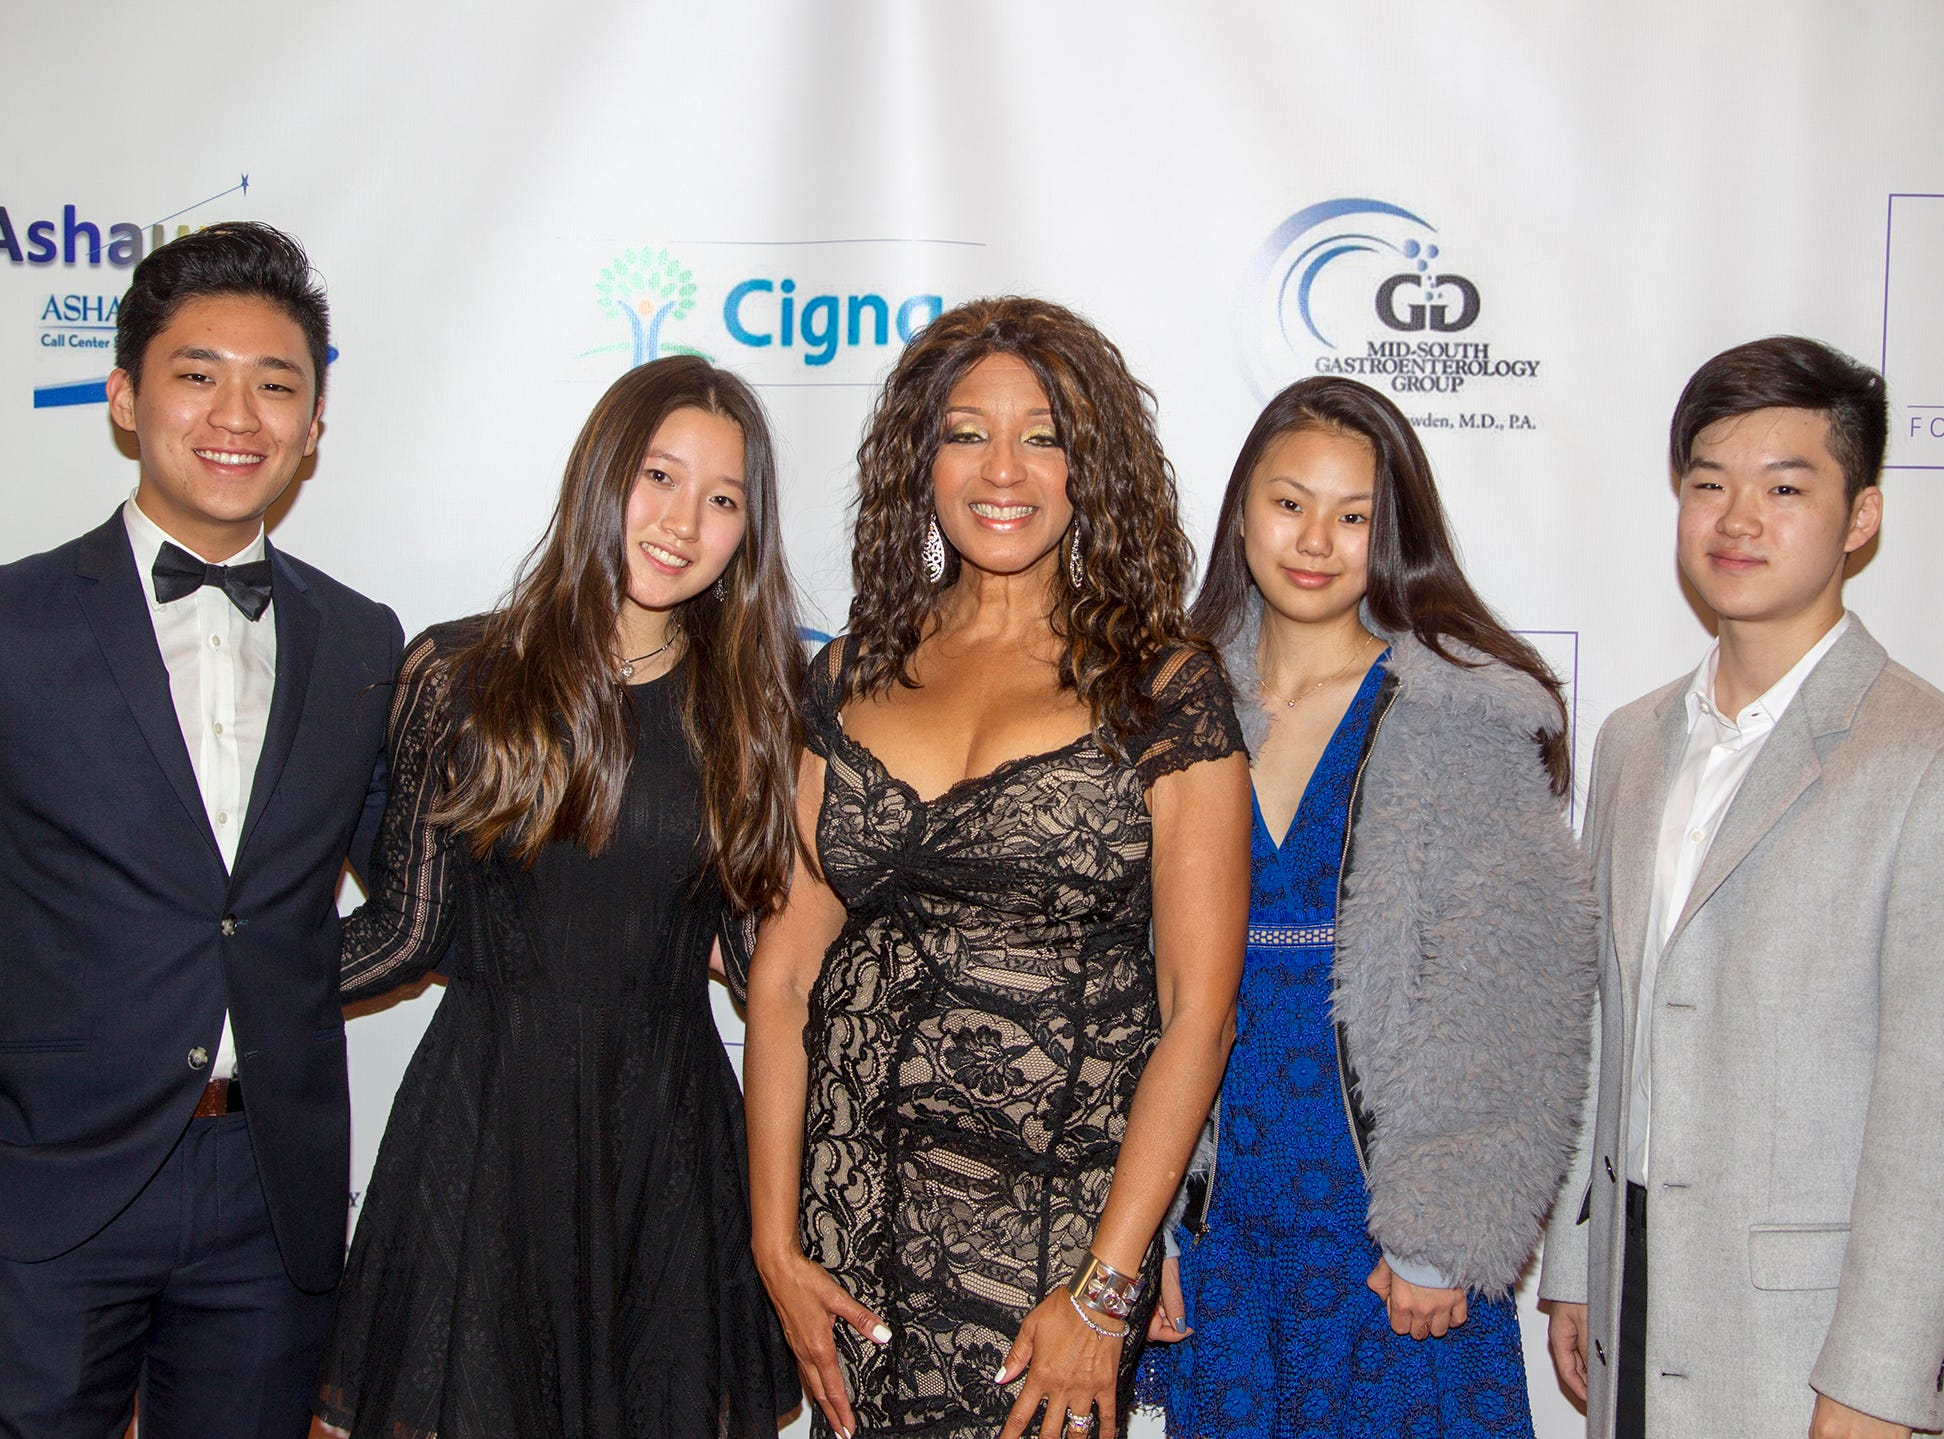 Dr. Sharon Banks-Williams center with JBF Scholars. Jessie Banks Foundation holds 16th annual Scholarship Awards Gala in Teaneck. 11/09/2018